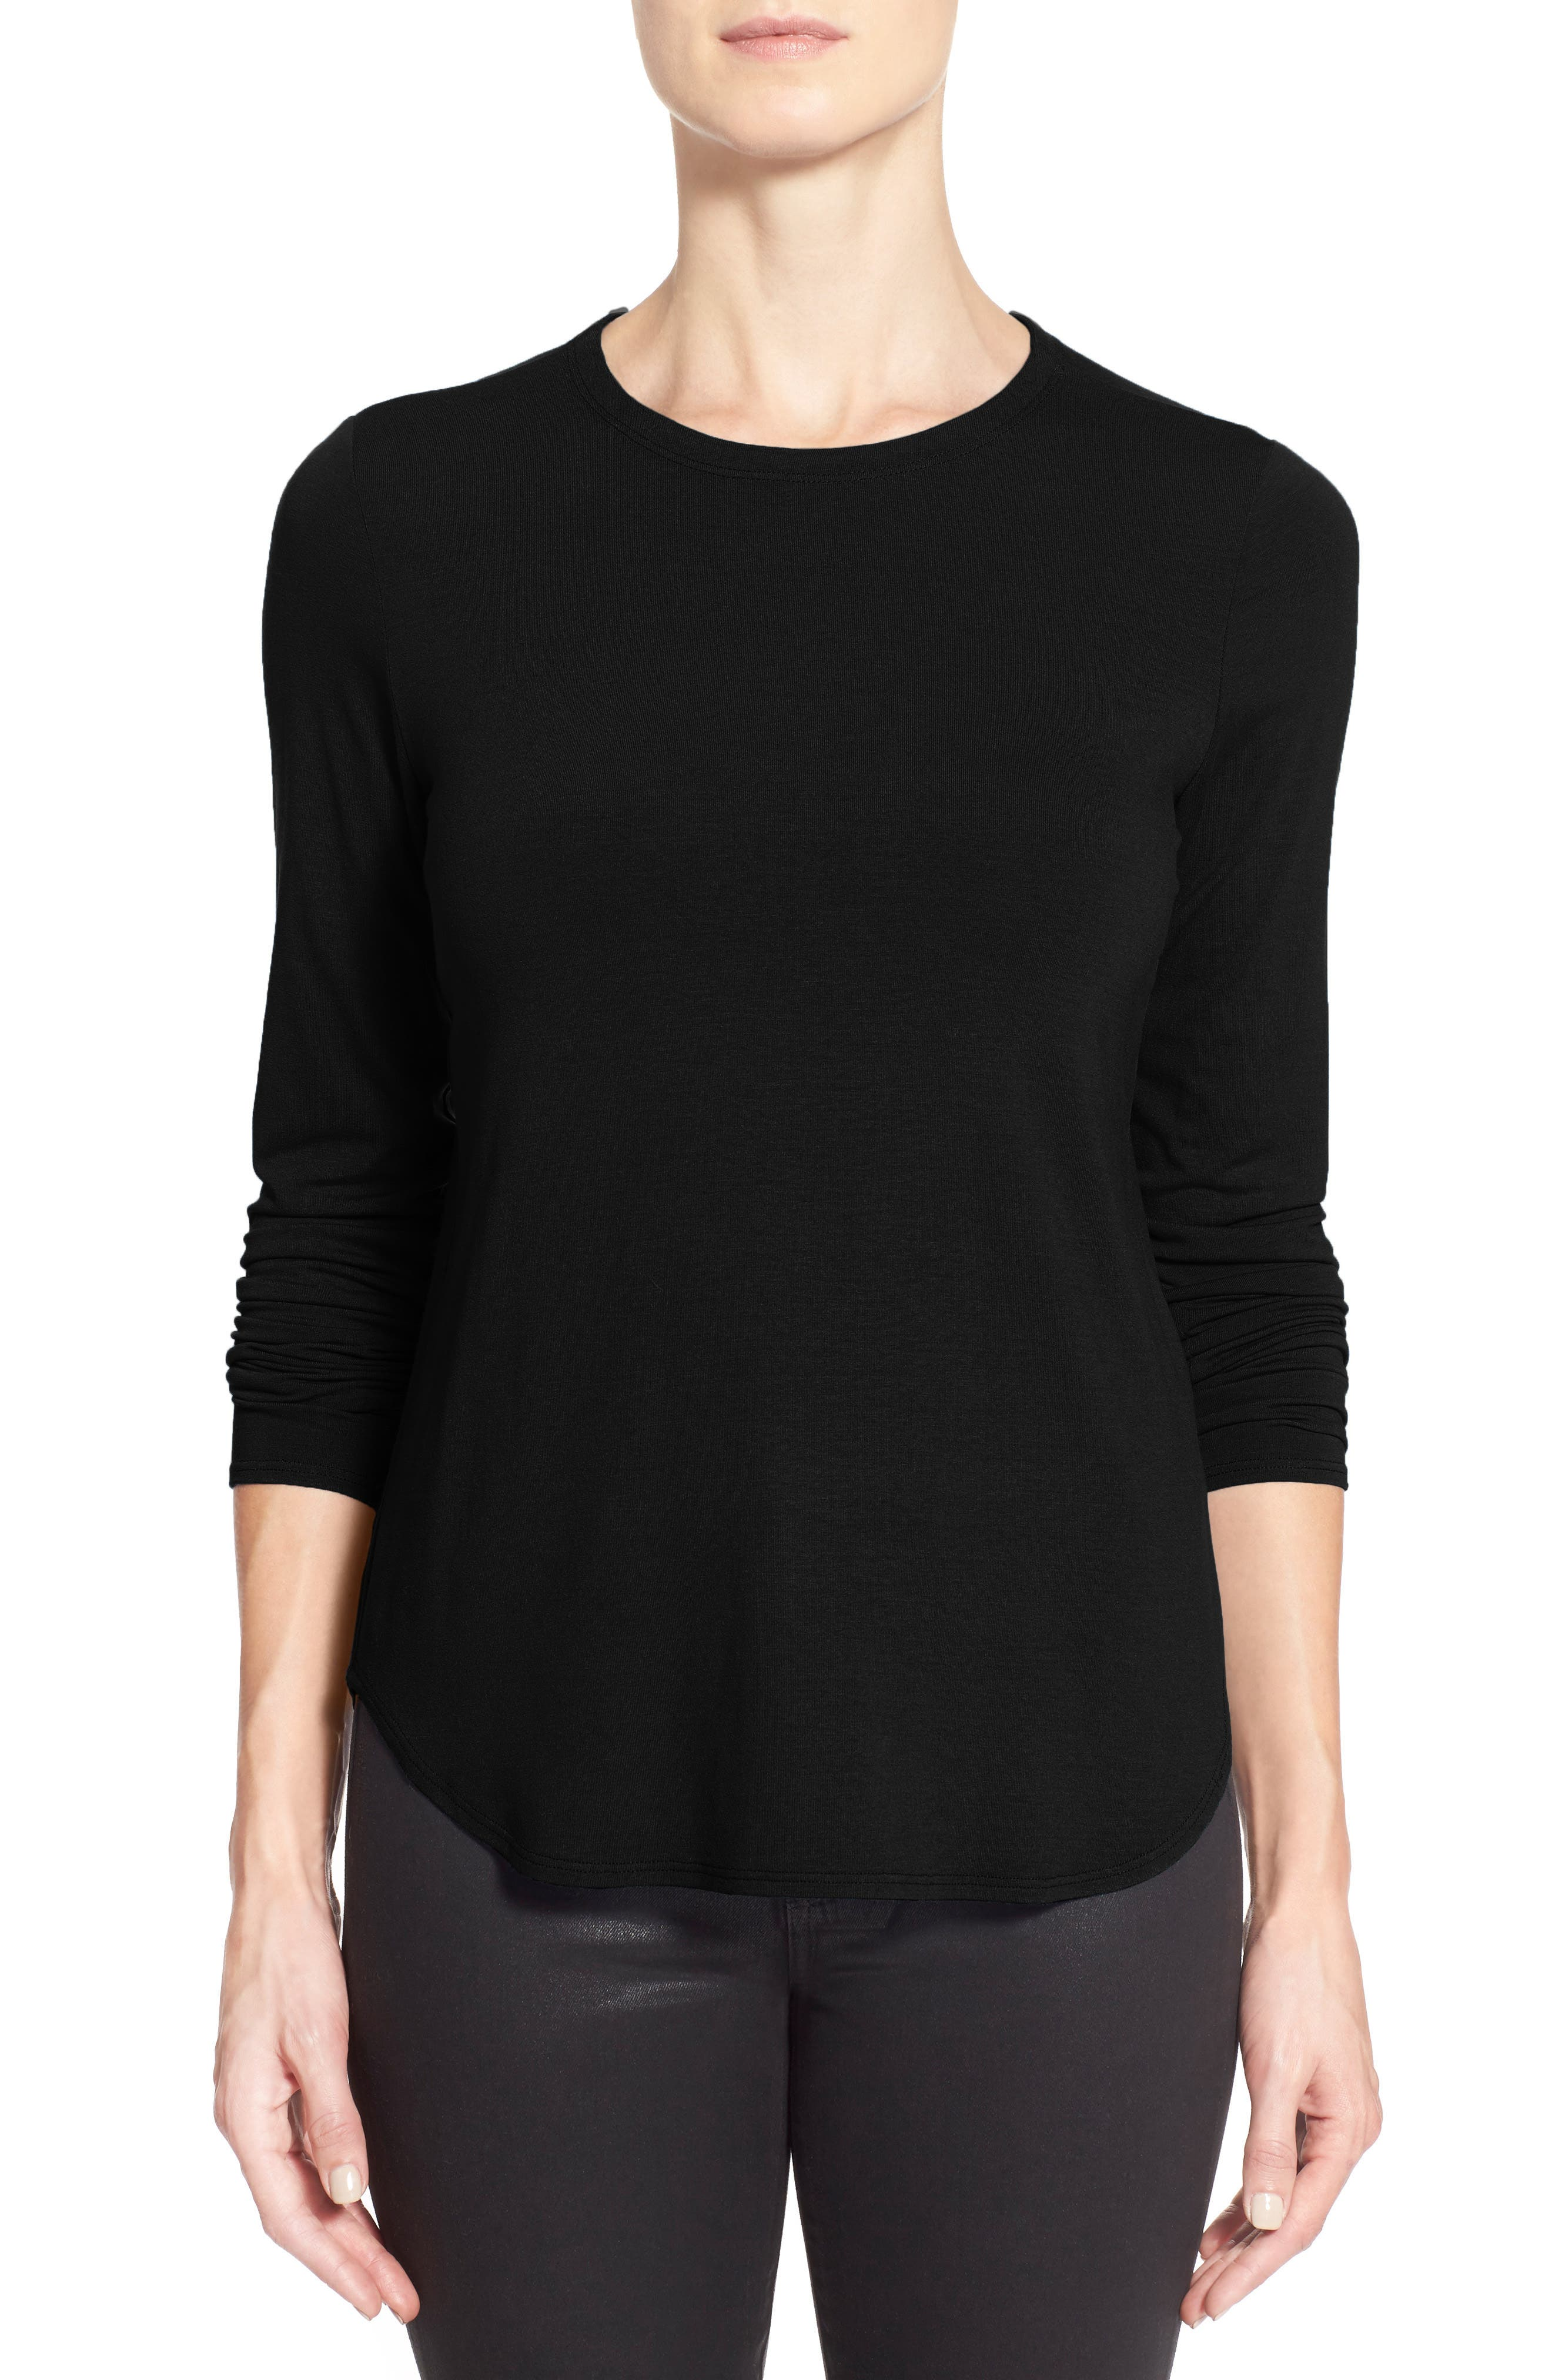 Alternate Image 1 Selected - Eileen Fisher Crewneck Top (Regular & Petite)